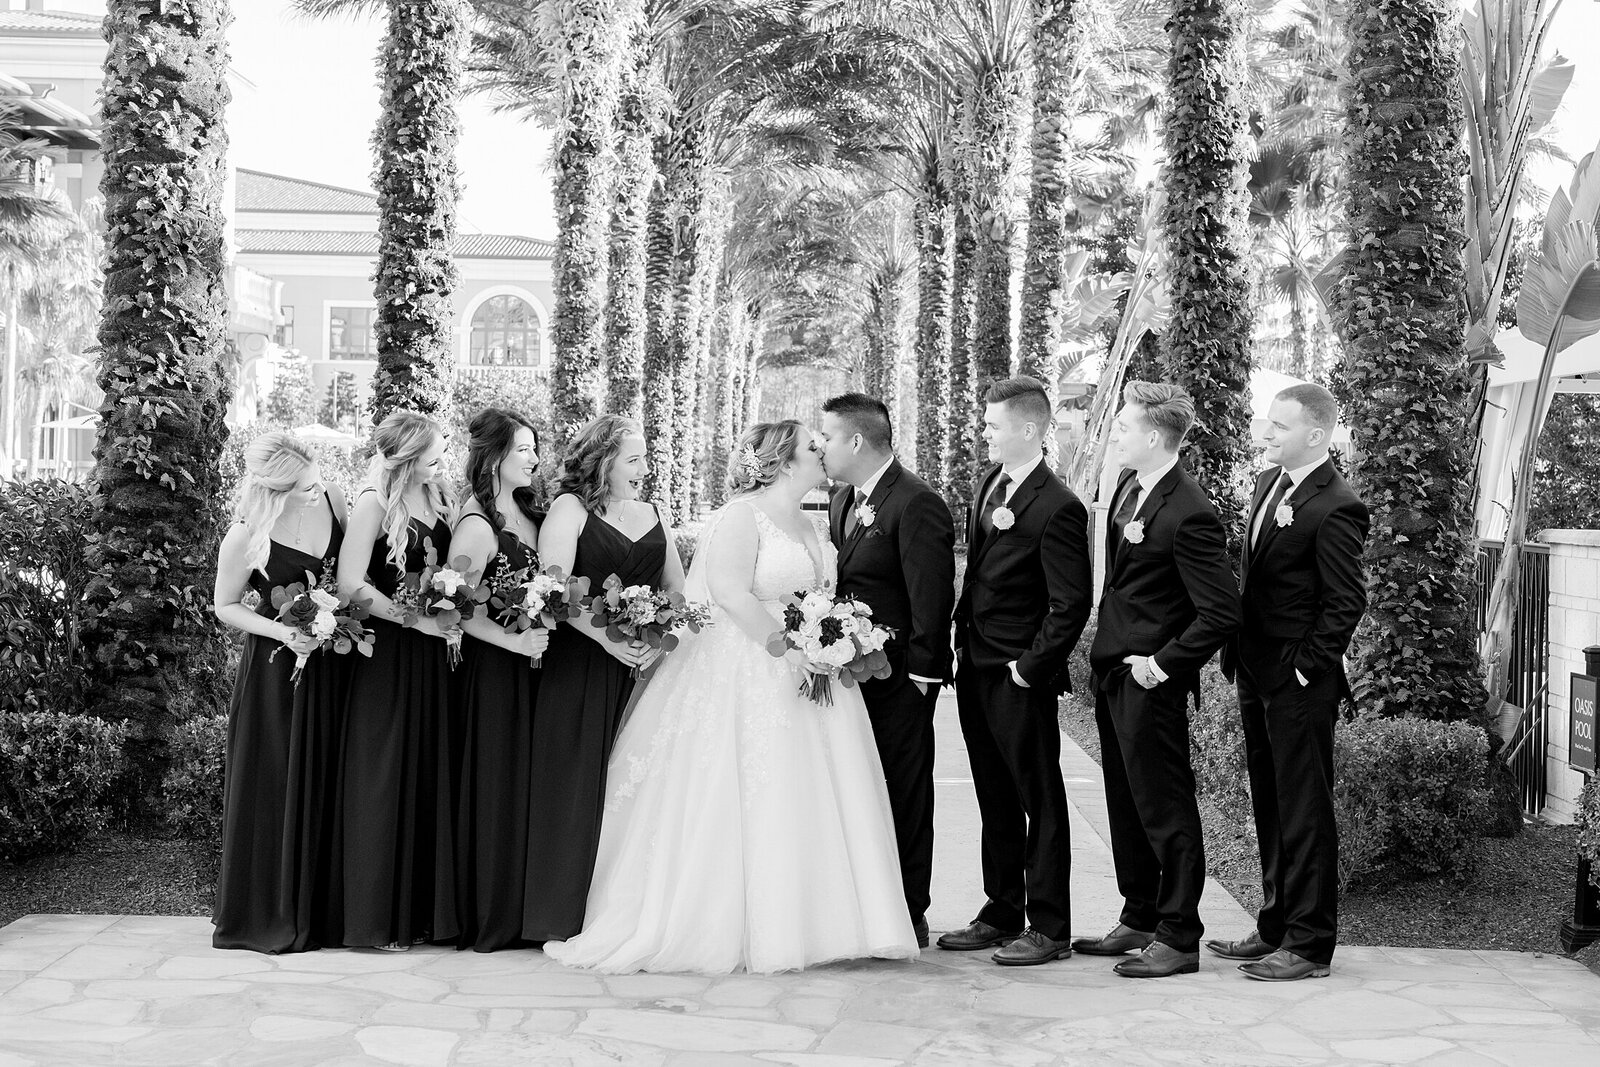 Bridal Party | Four Seasons Wedding | Chynna Pacheco Photography